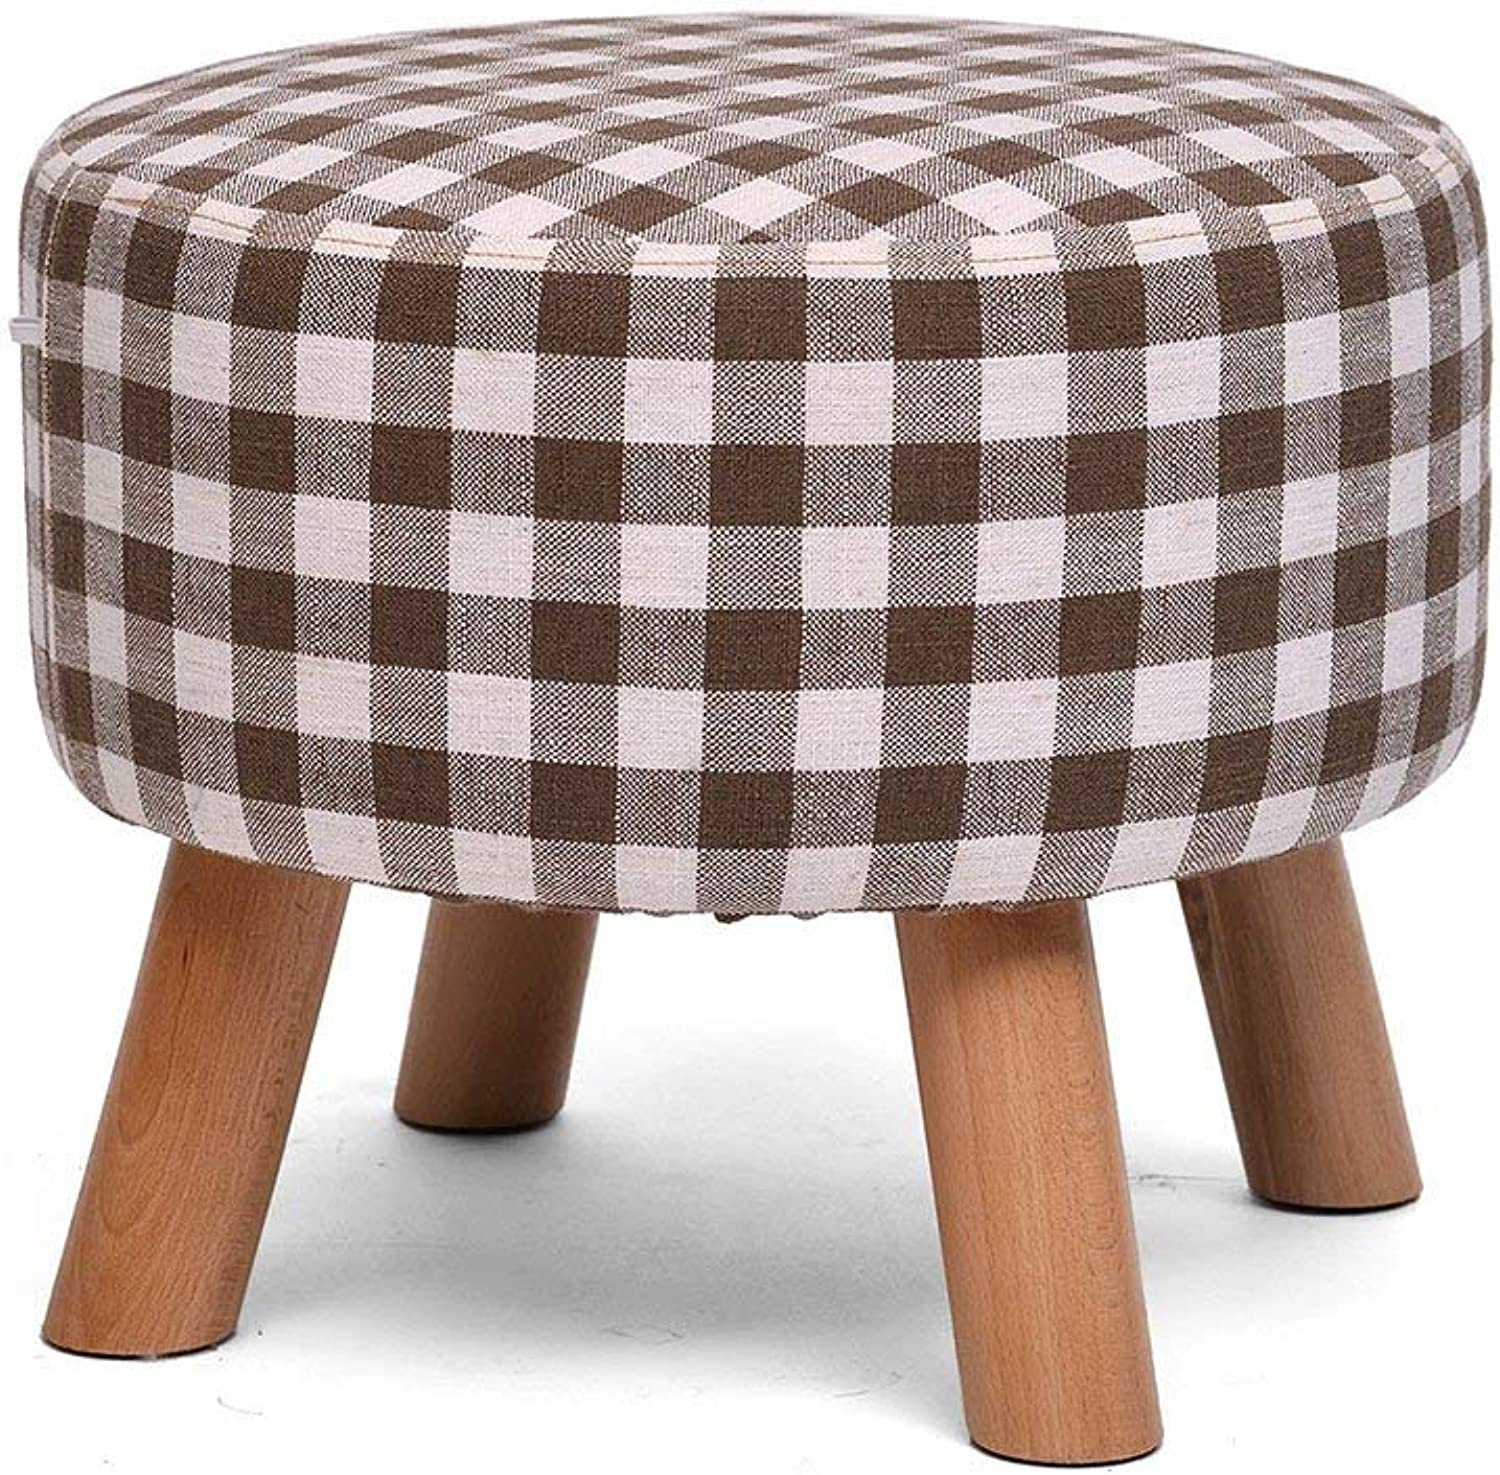 SED Chair Home shoes Bench Stool-Stool Solid Wood 4 Legs Cloth Art Short Change shoes Footstool Sofa Leisure Sofa Bench